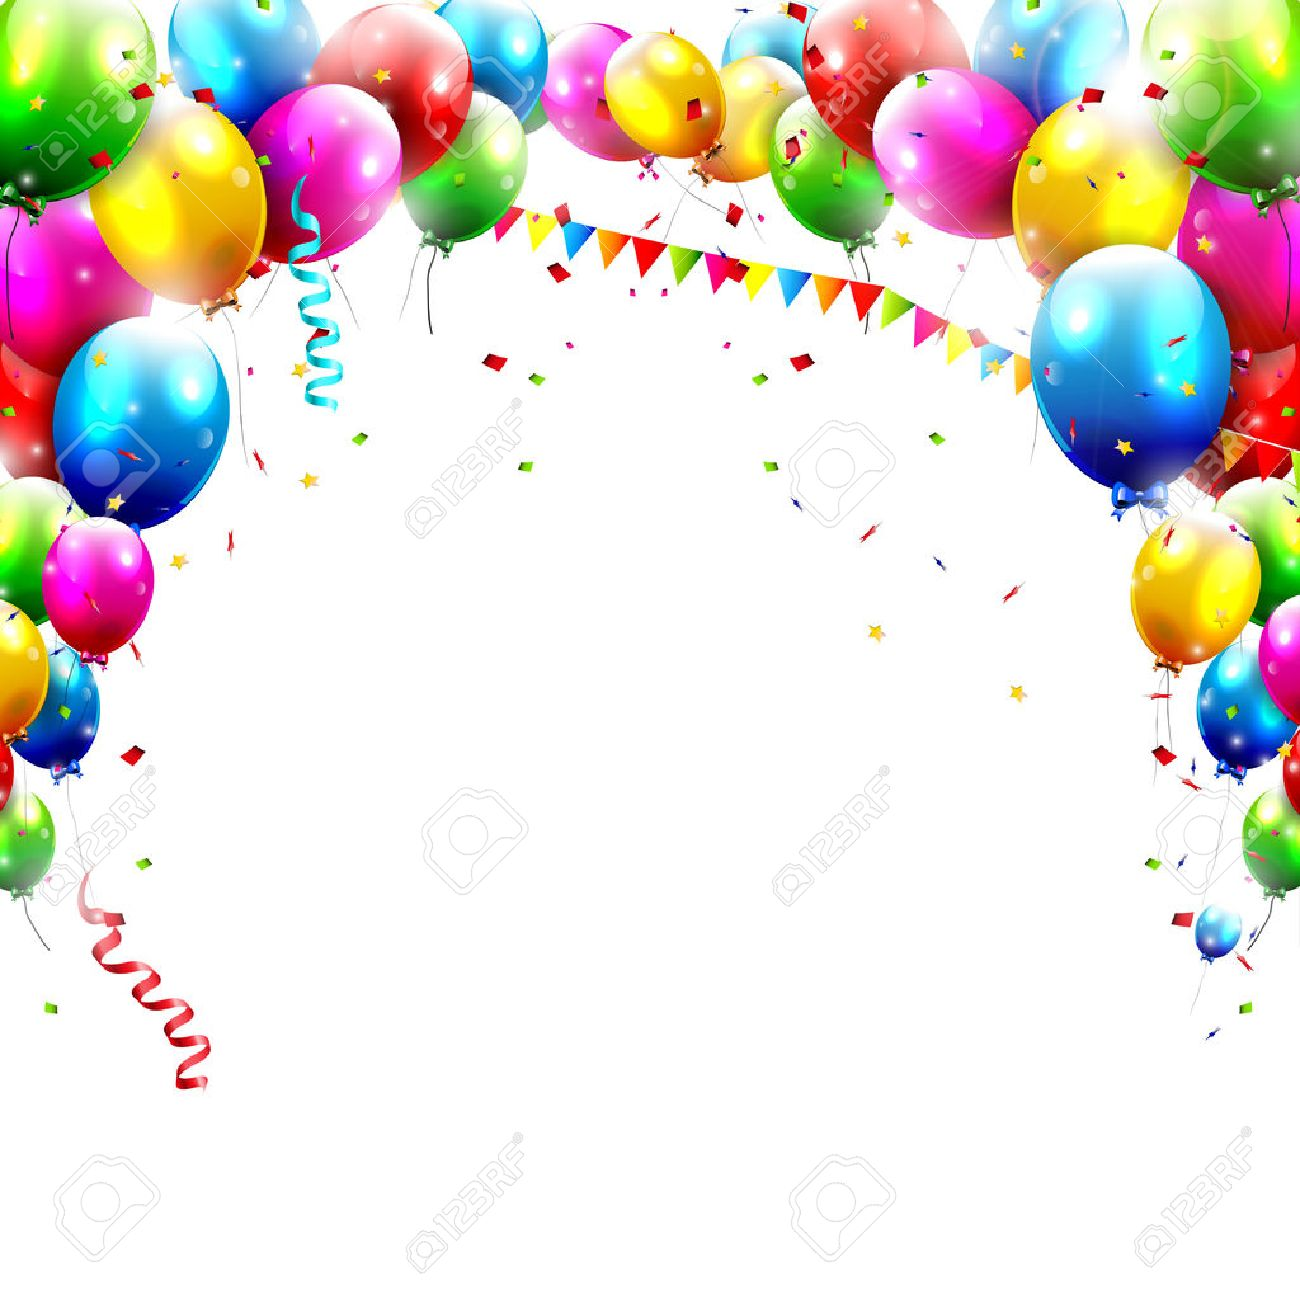 Coloful Birthday Balloons Isolated On White Background Royalty Free